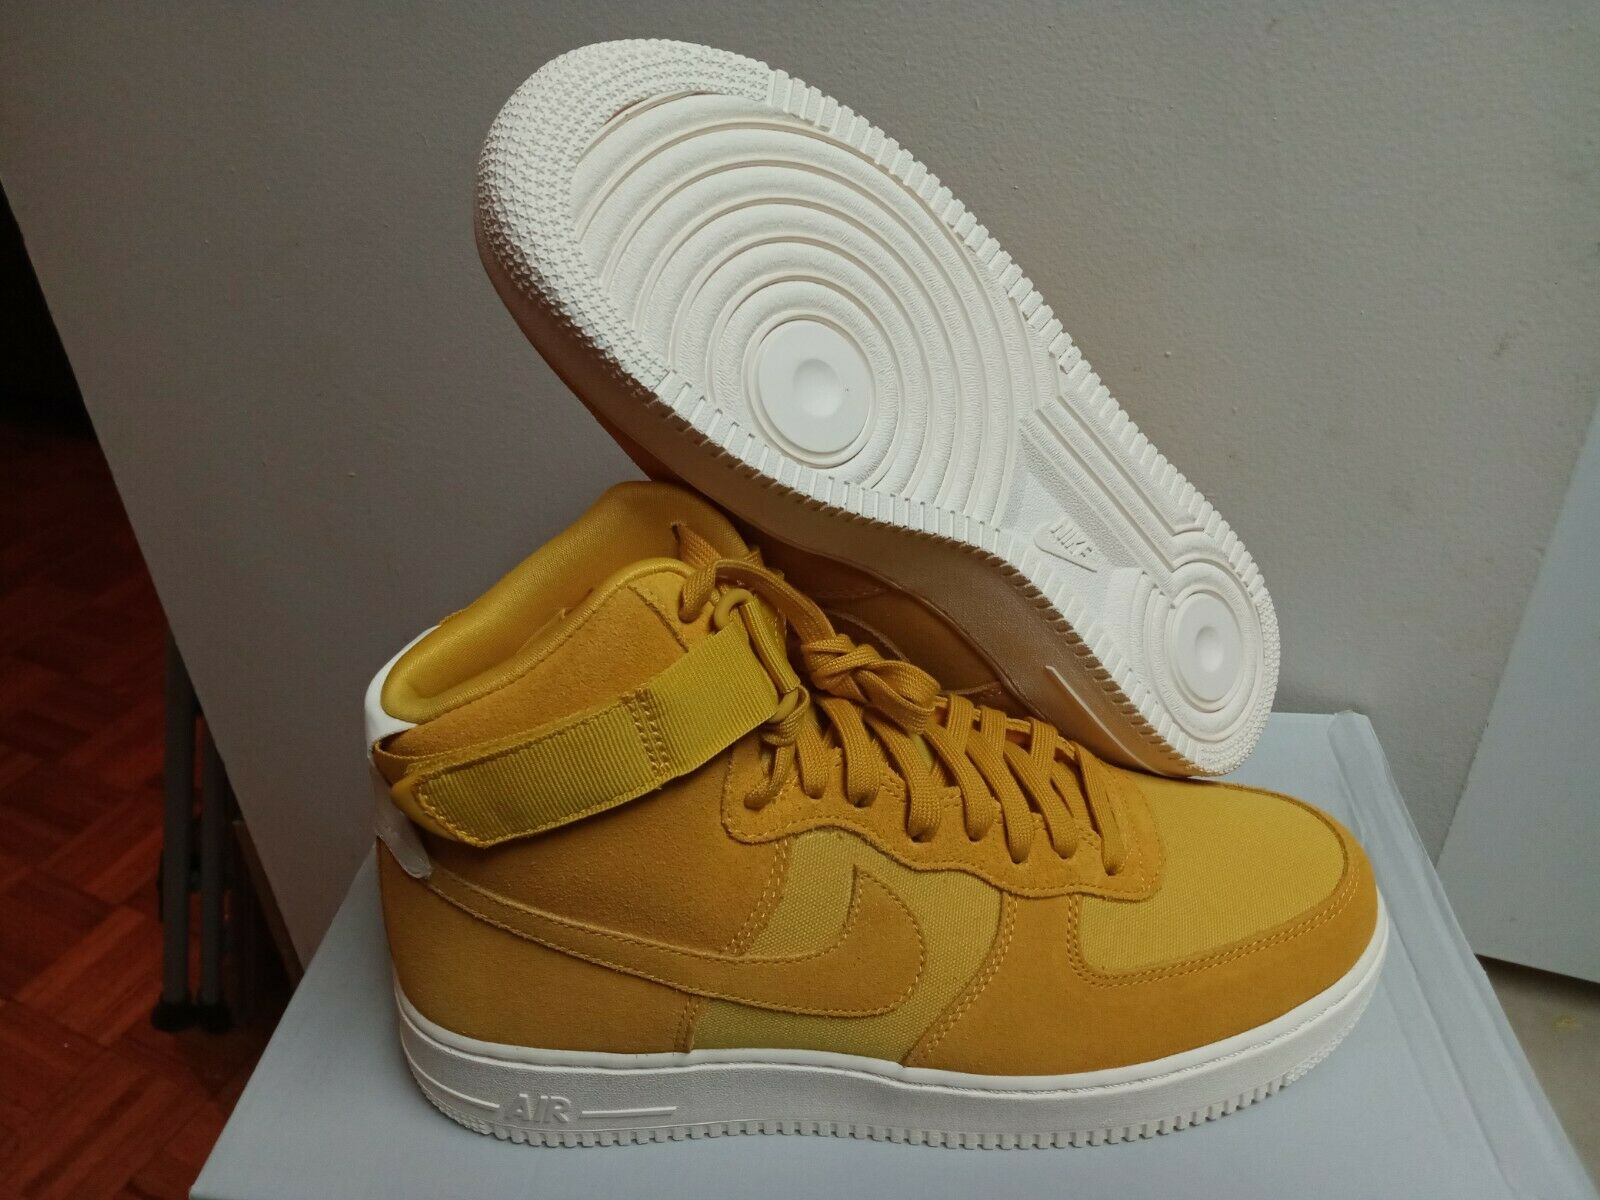 82a2cc49f1 Men's New Nike Air Force 1 Hi Yellow Ochre Sail AQ8649 700 Size 10.5  nobsie2127-Athletic Shoes